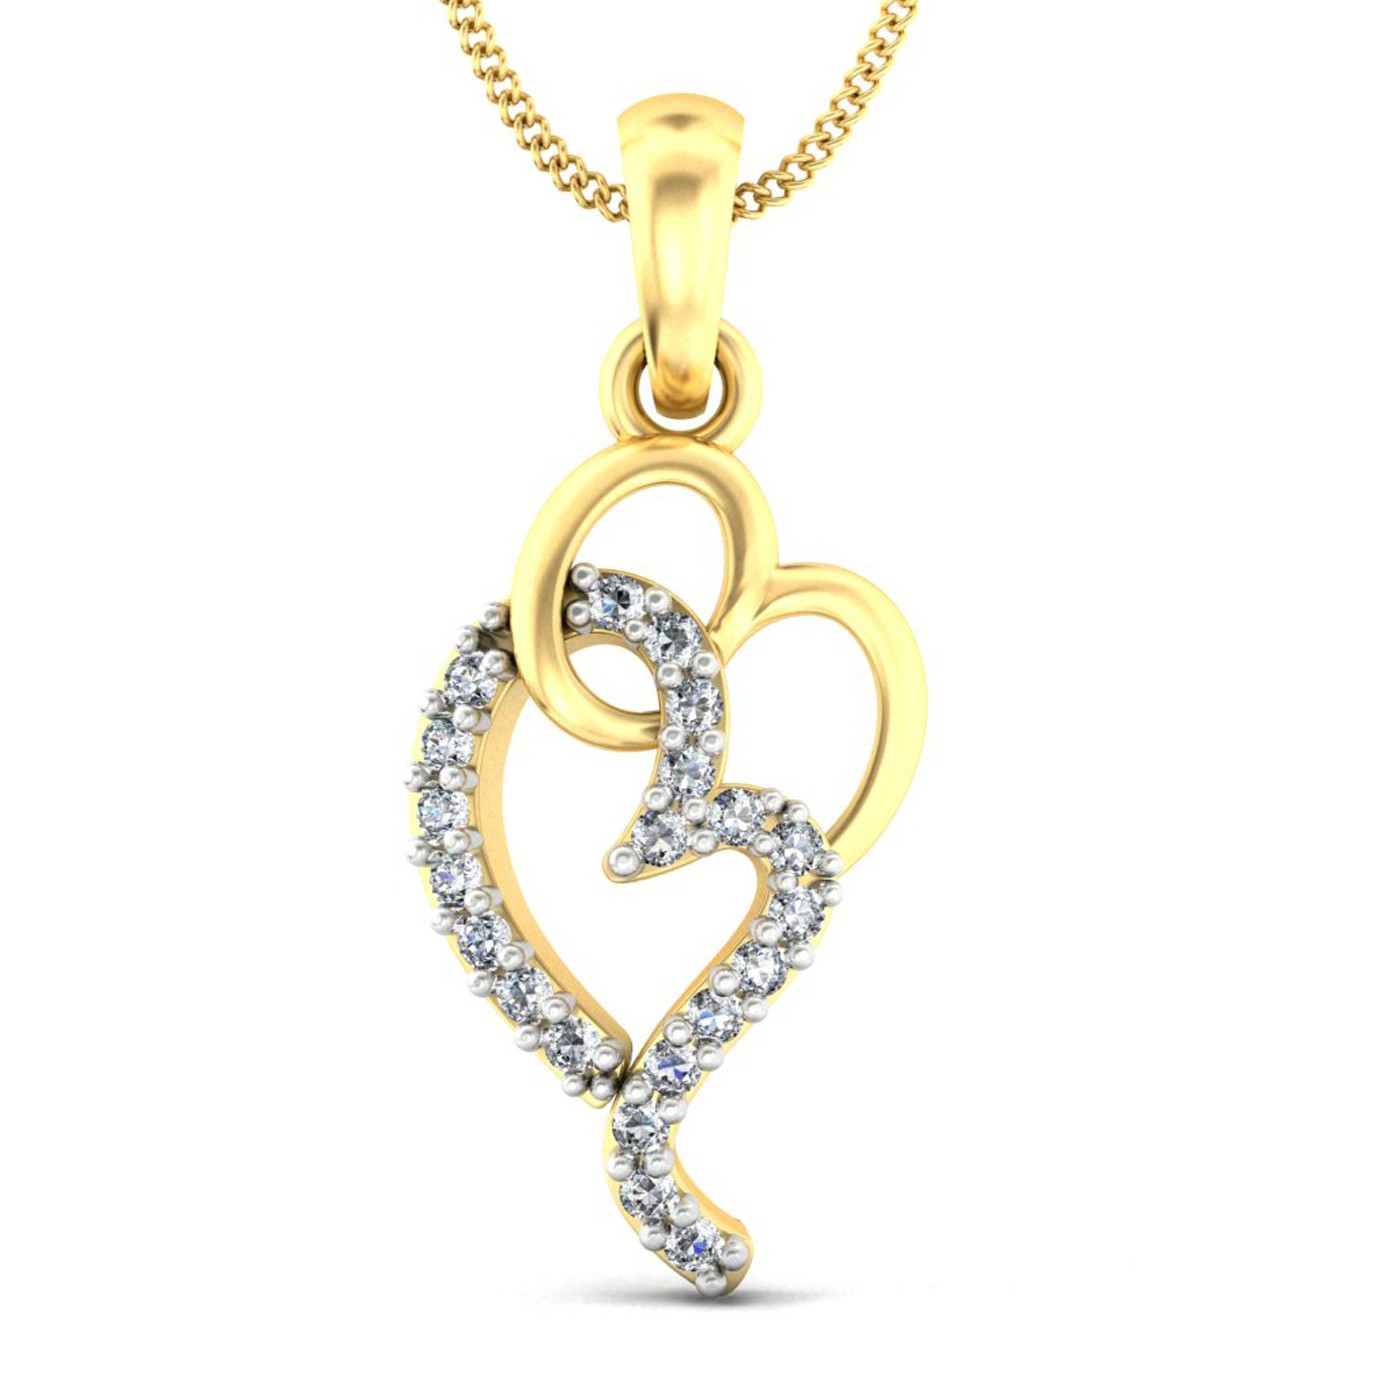 Exclusive Collections of Pendants with Gold Long Chain Designs